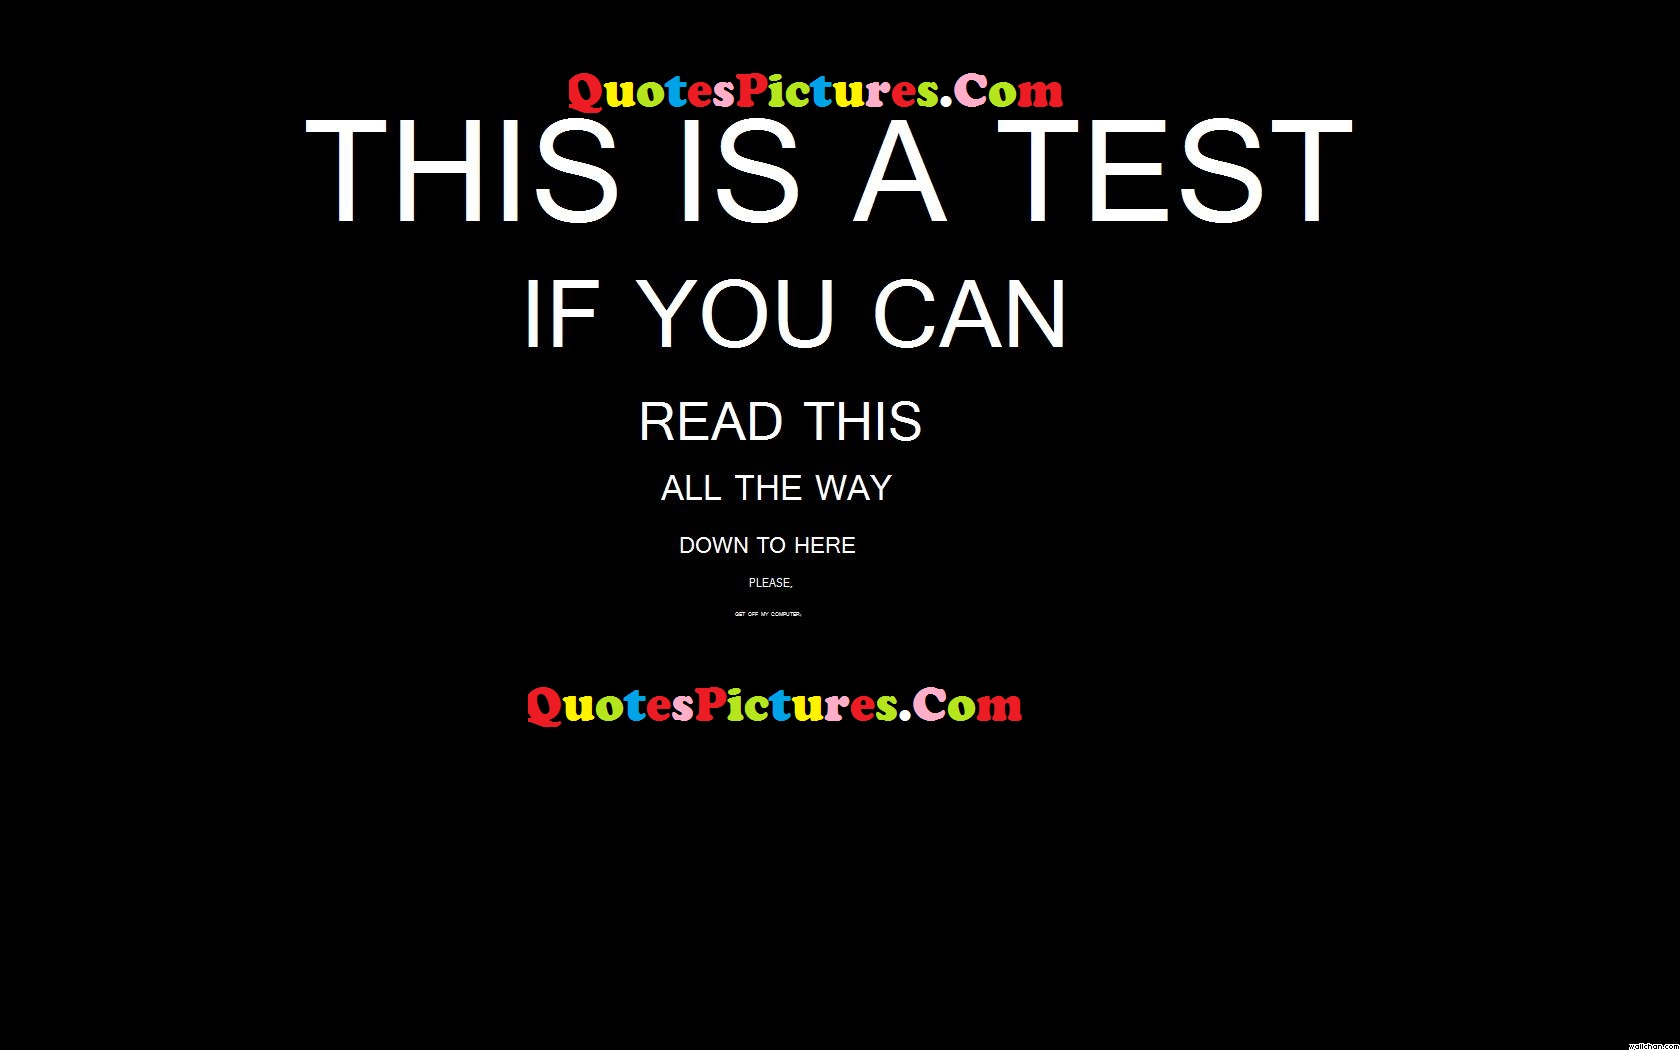 Best Life Quote - This Is A Test If You Can Read This All The Way Down To Here